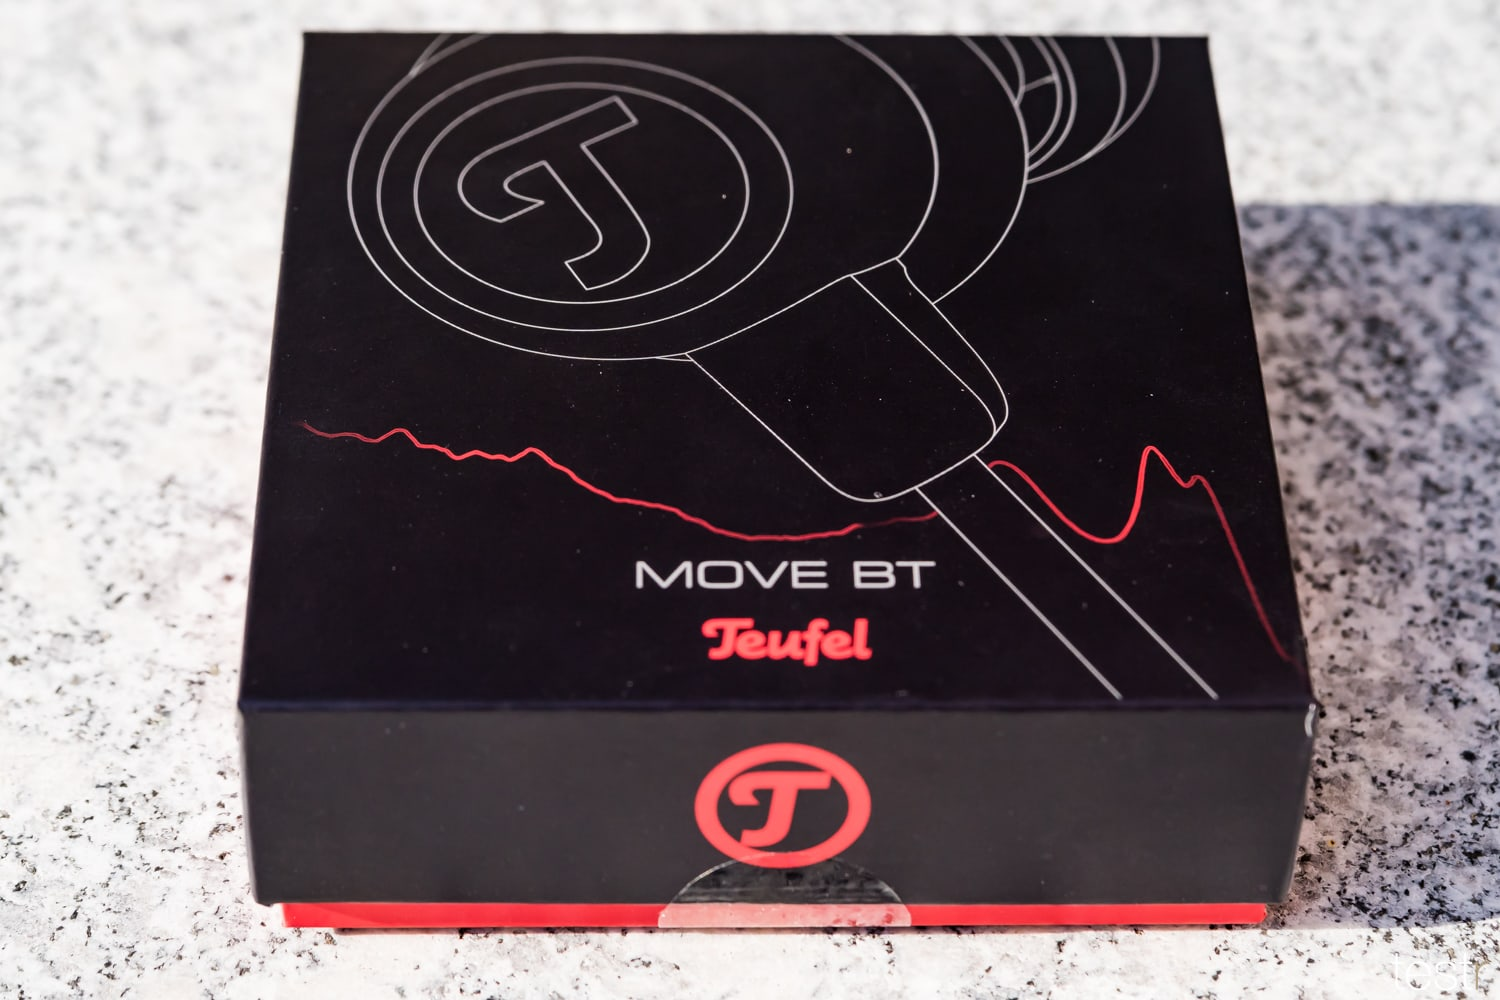 Teufel MOVE BT 1